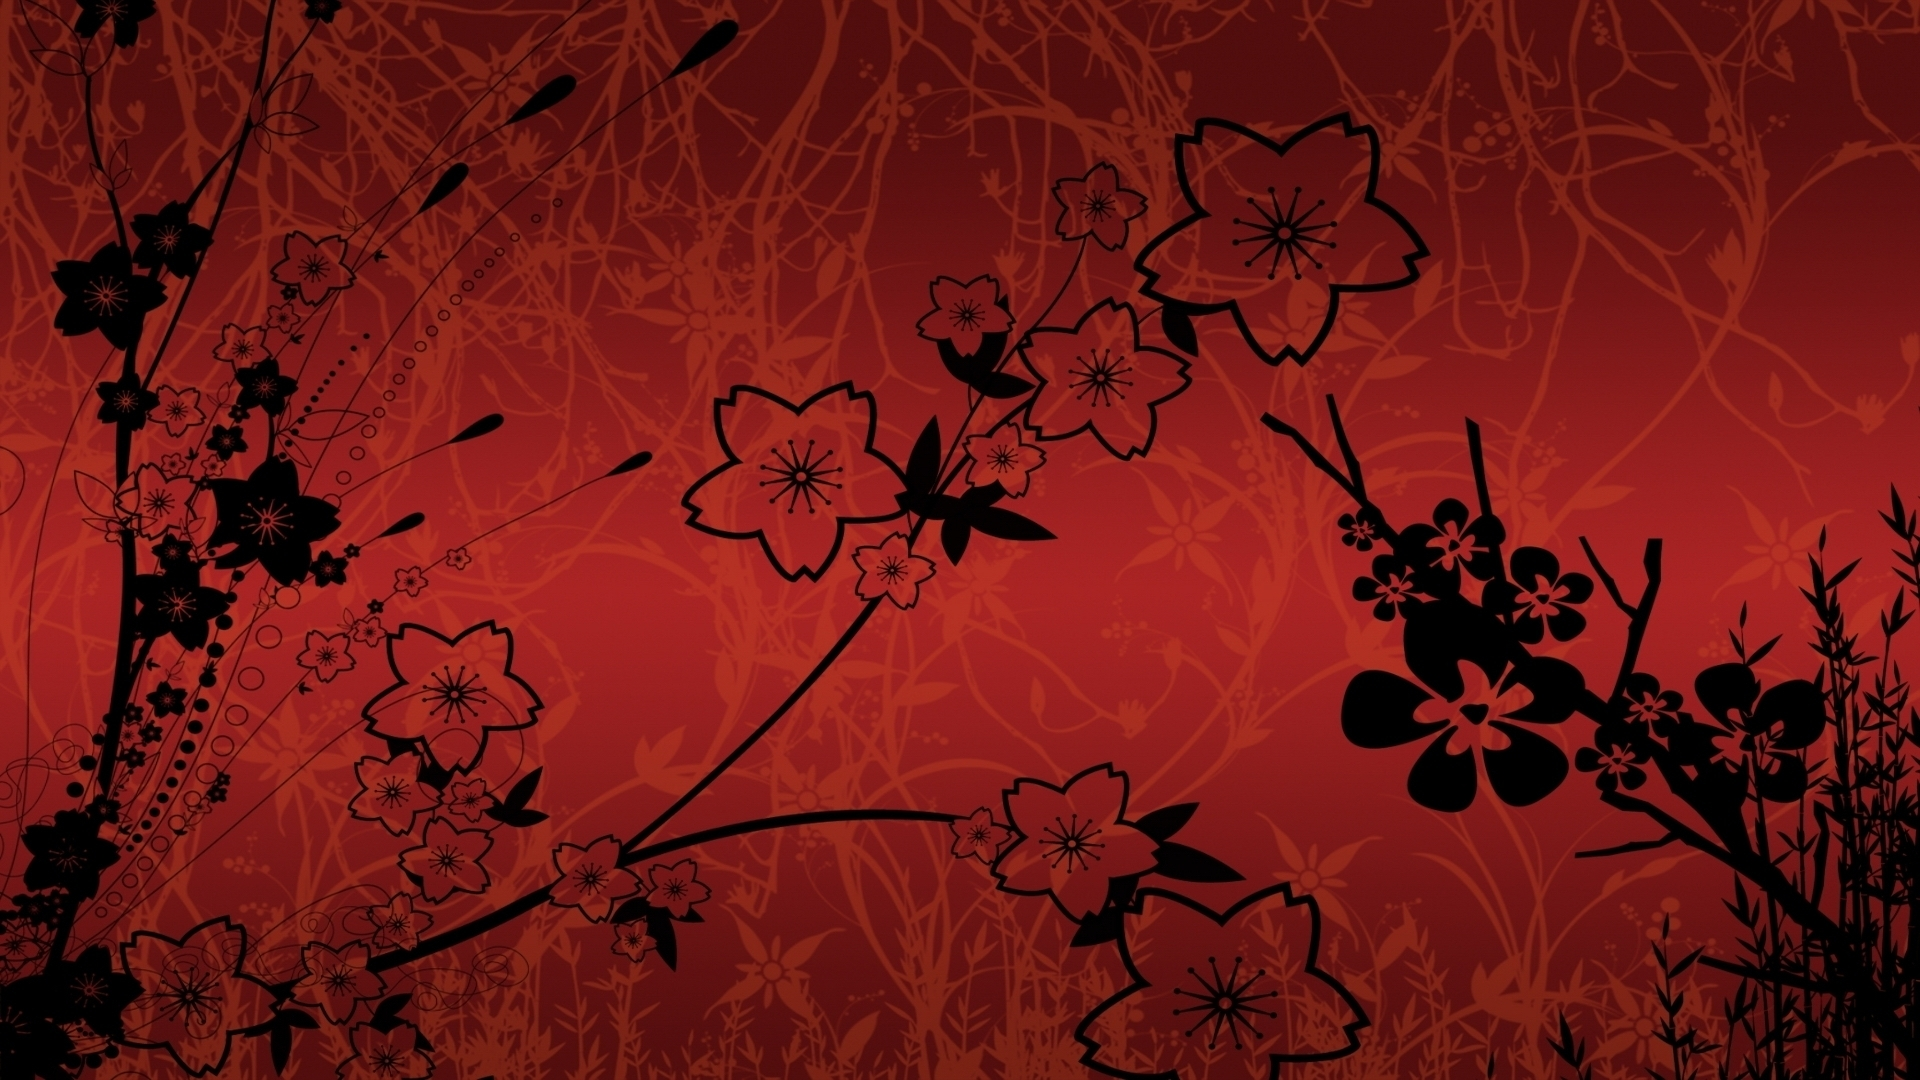 Red And Black Flowers Background Hd Wallpaper